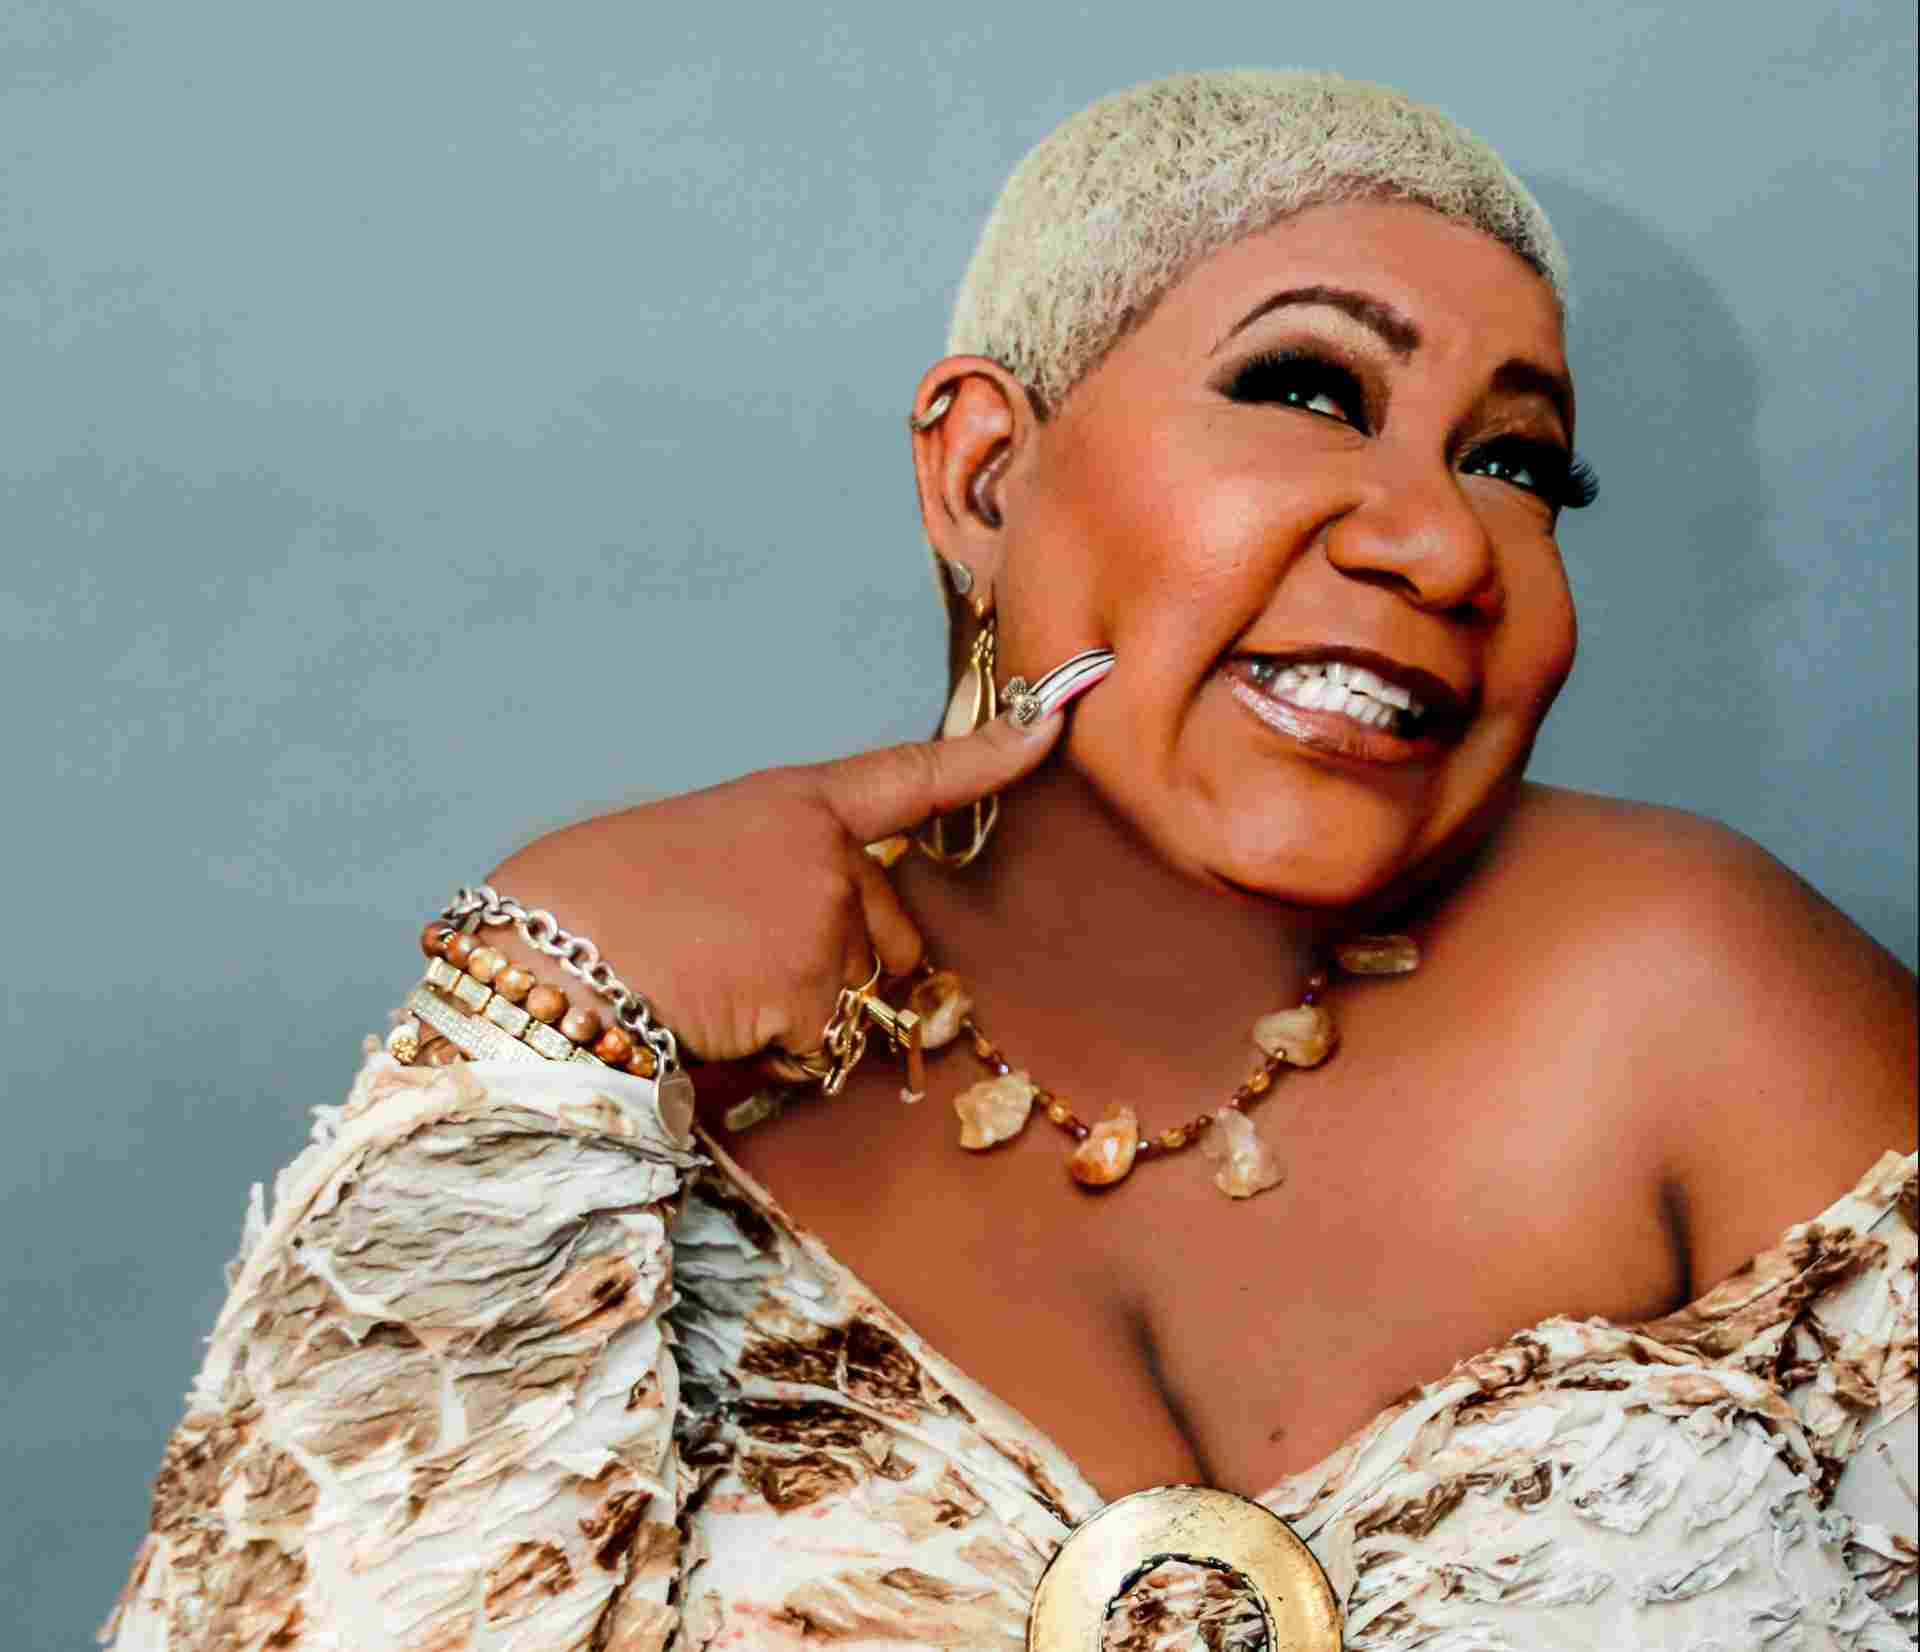 Image of talented comedian, Luenell